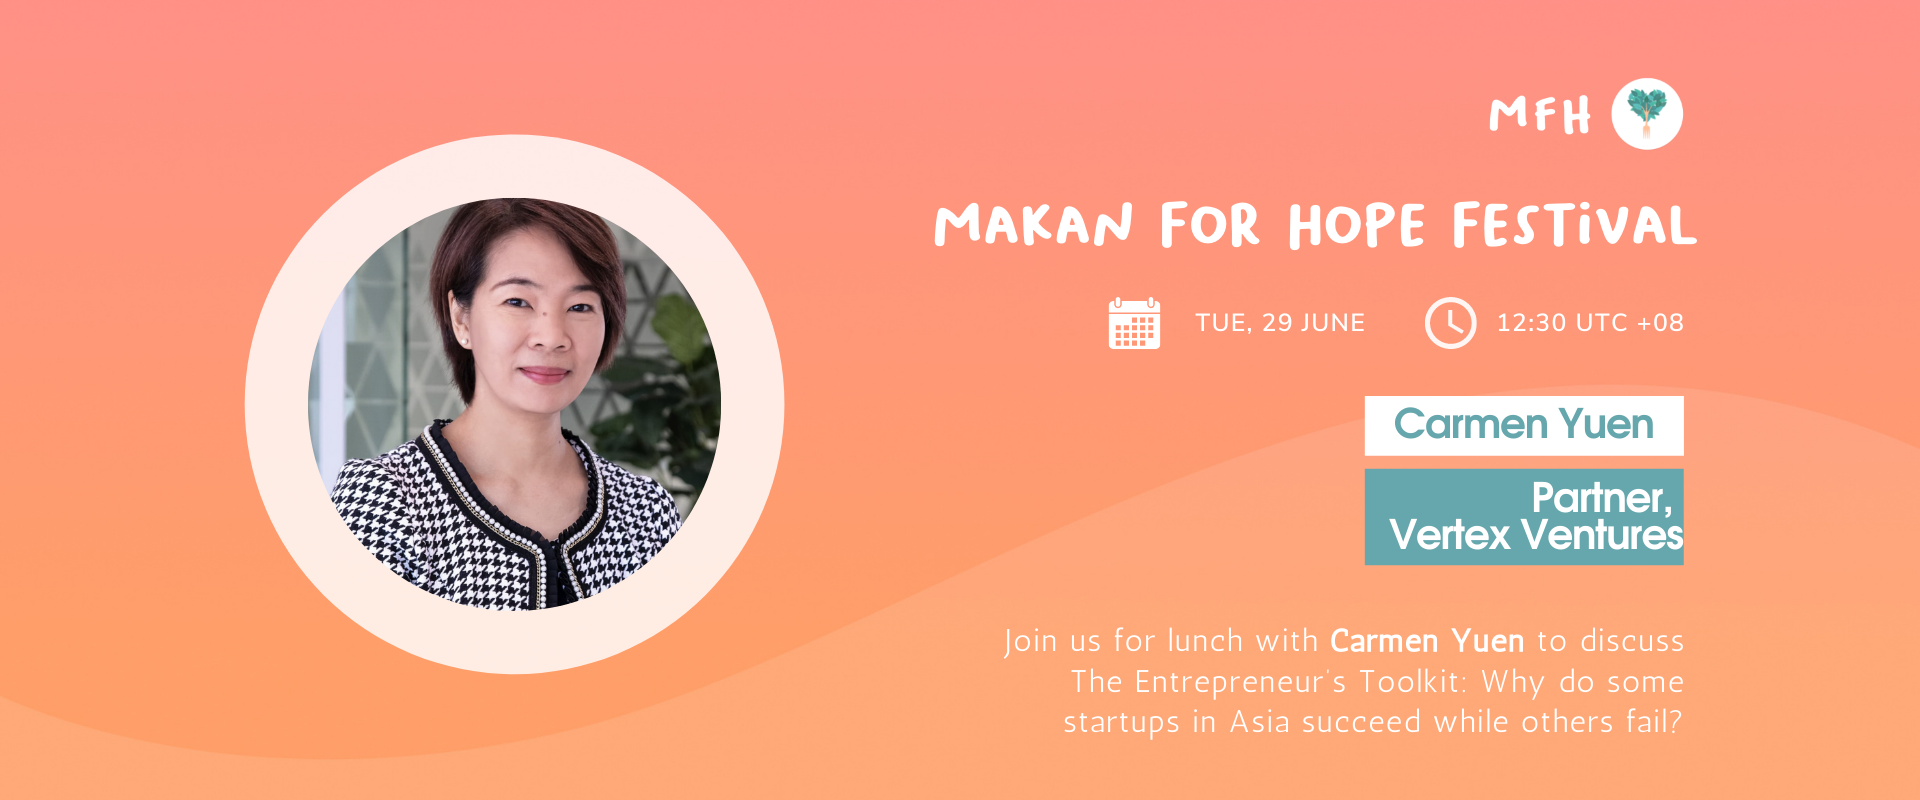 Carmen Yuen - The Entrepreneur's Toolkit: Why do Some Startups in Asia Succeed while Others Fail? Banner Image